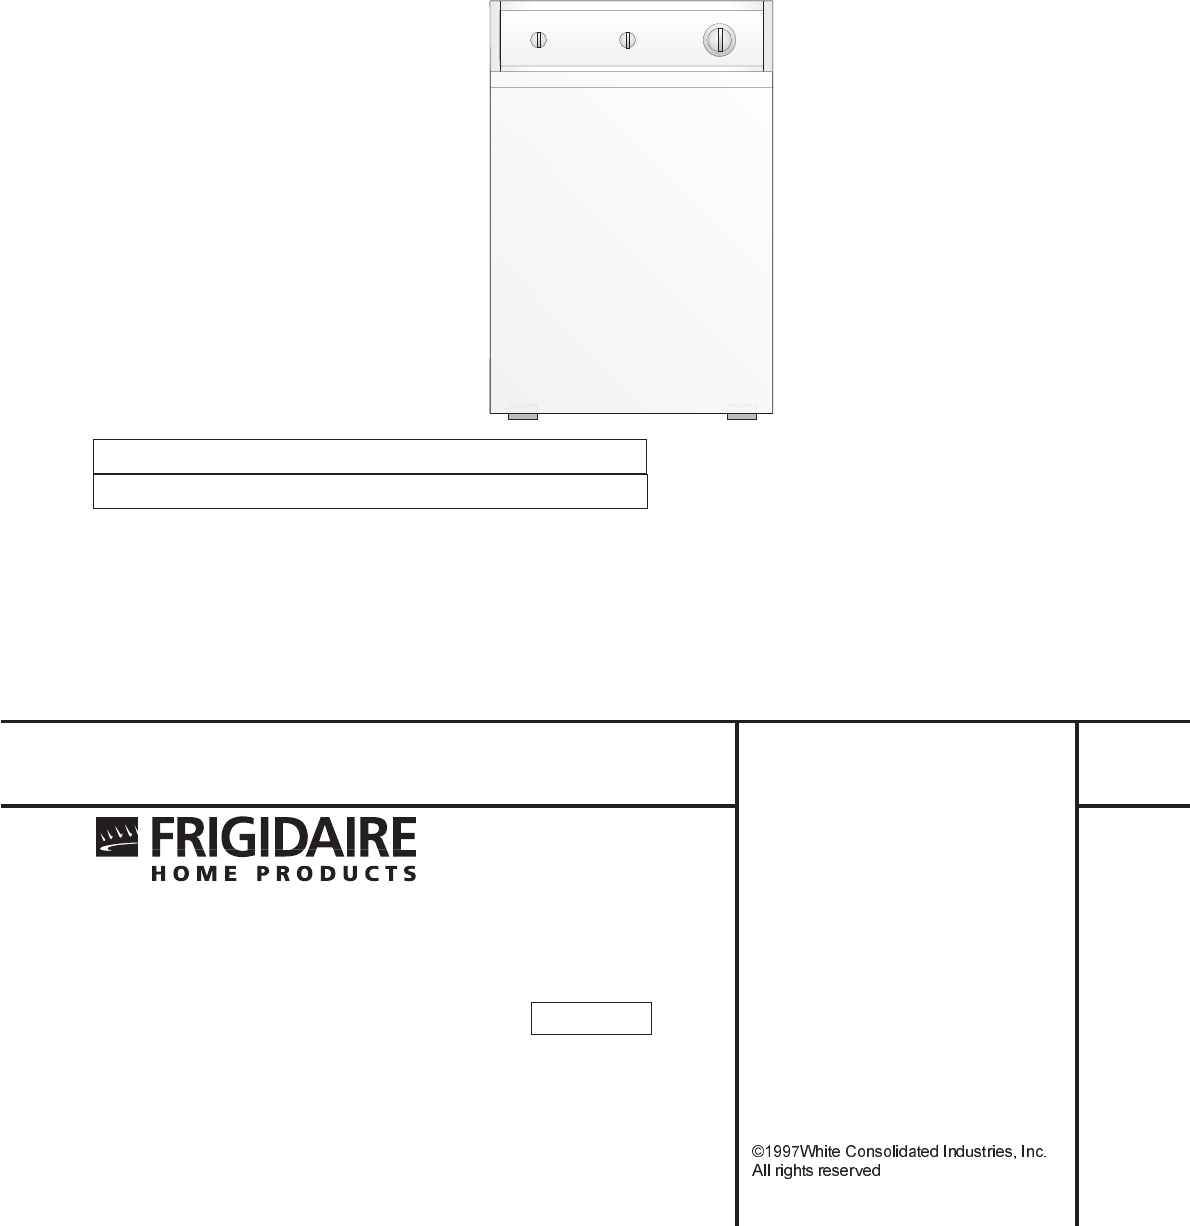 bosch dlx series dishwasher manual pdf